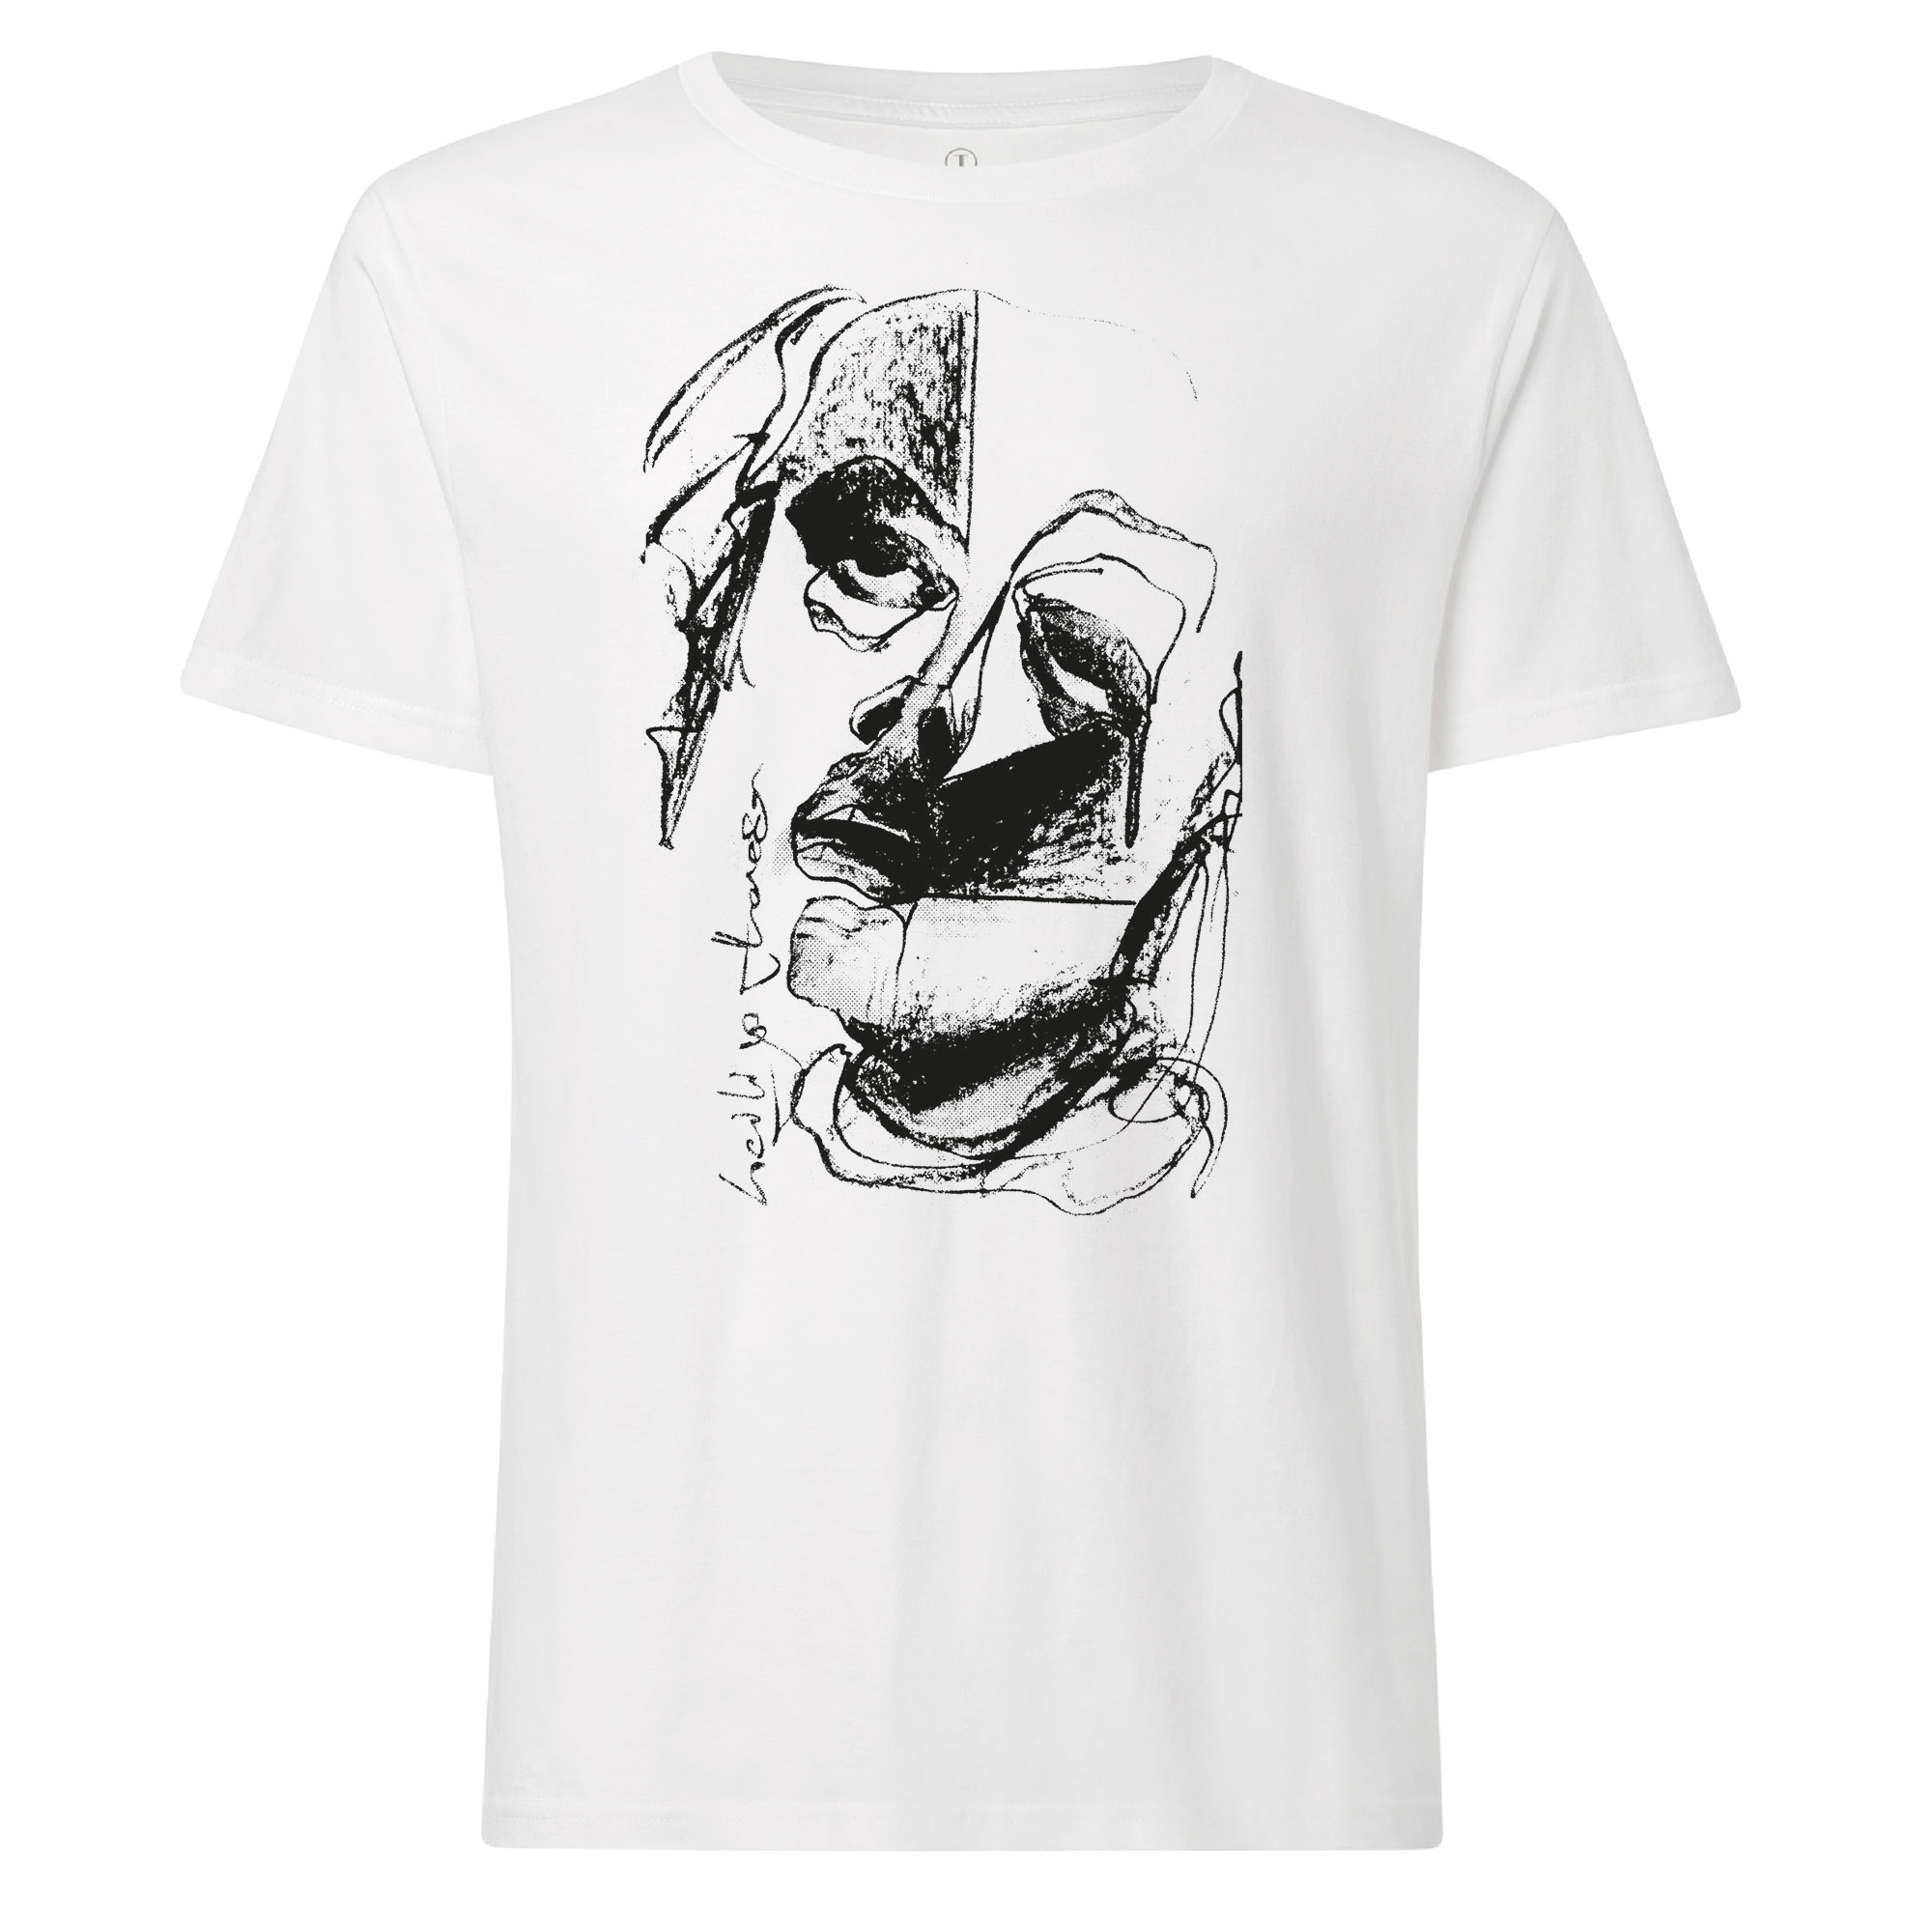 100for10 Luis Rutz T-Shirt black/white GOTS & Fairtrade